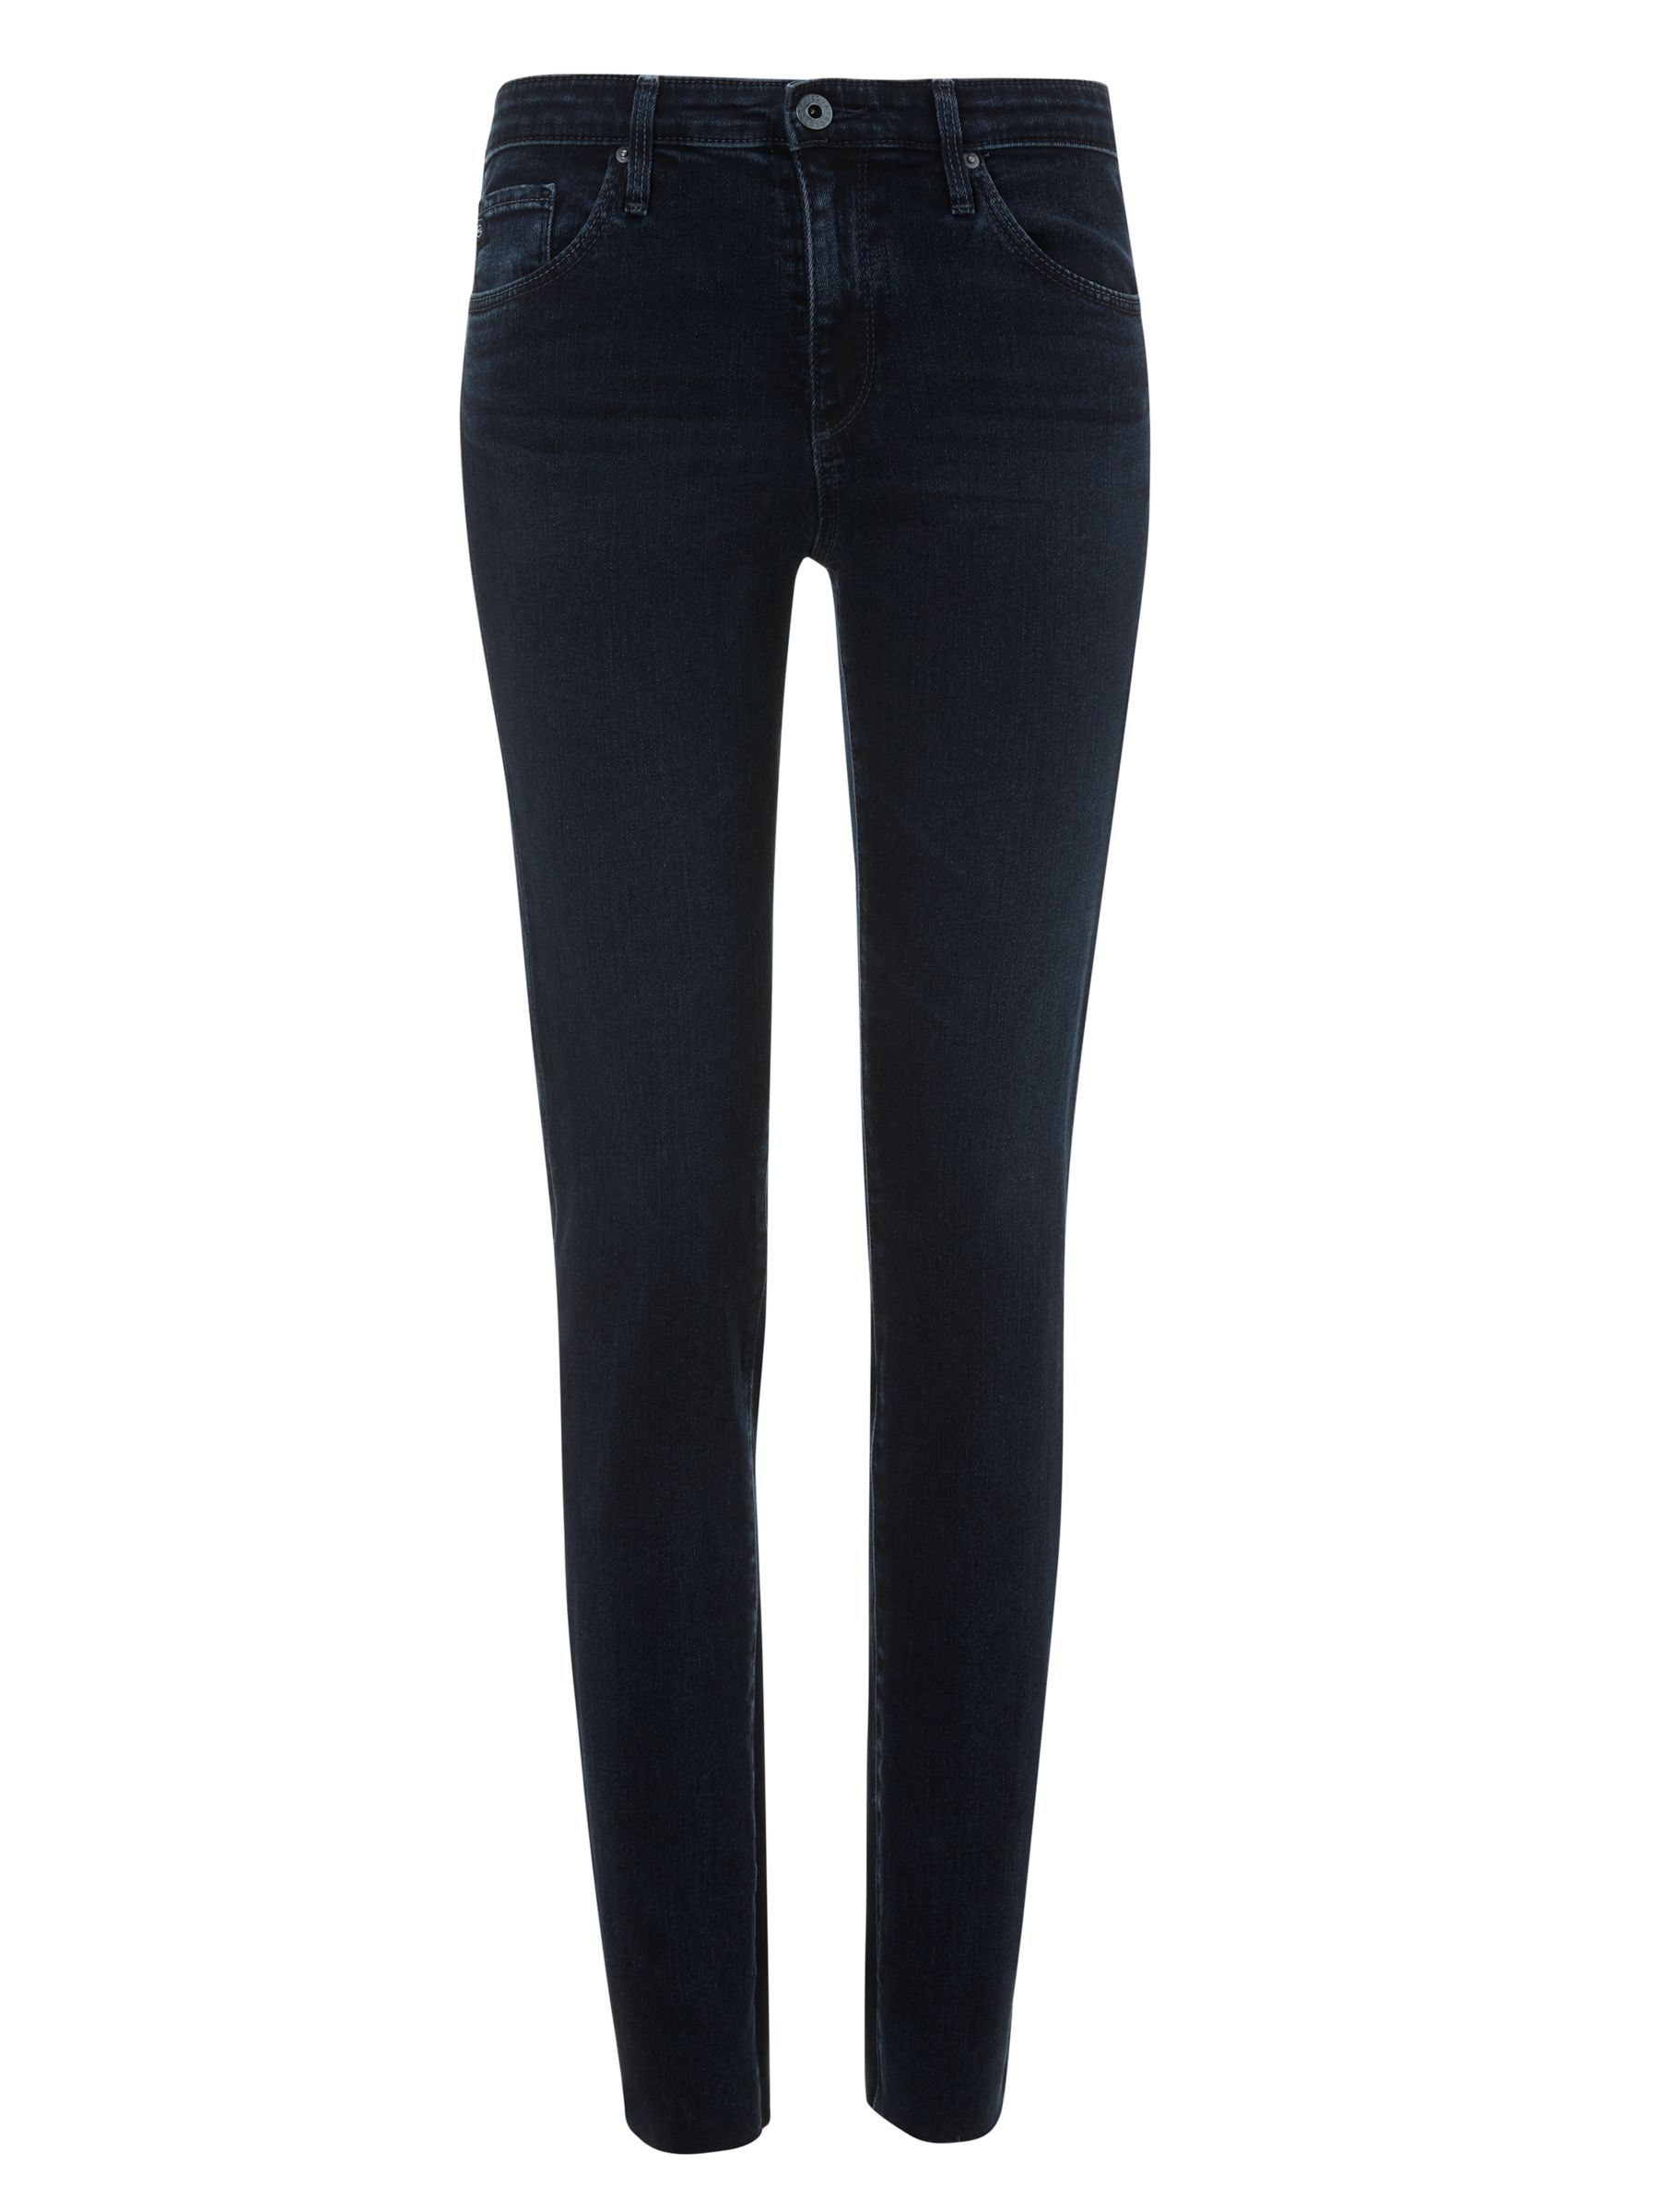 Buy AG The Prima Mid Rise Skinny Ankle Jeans, Yardbird, 24 Online at johnlewis.com